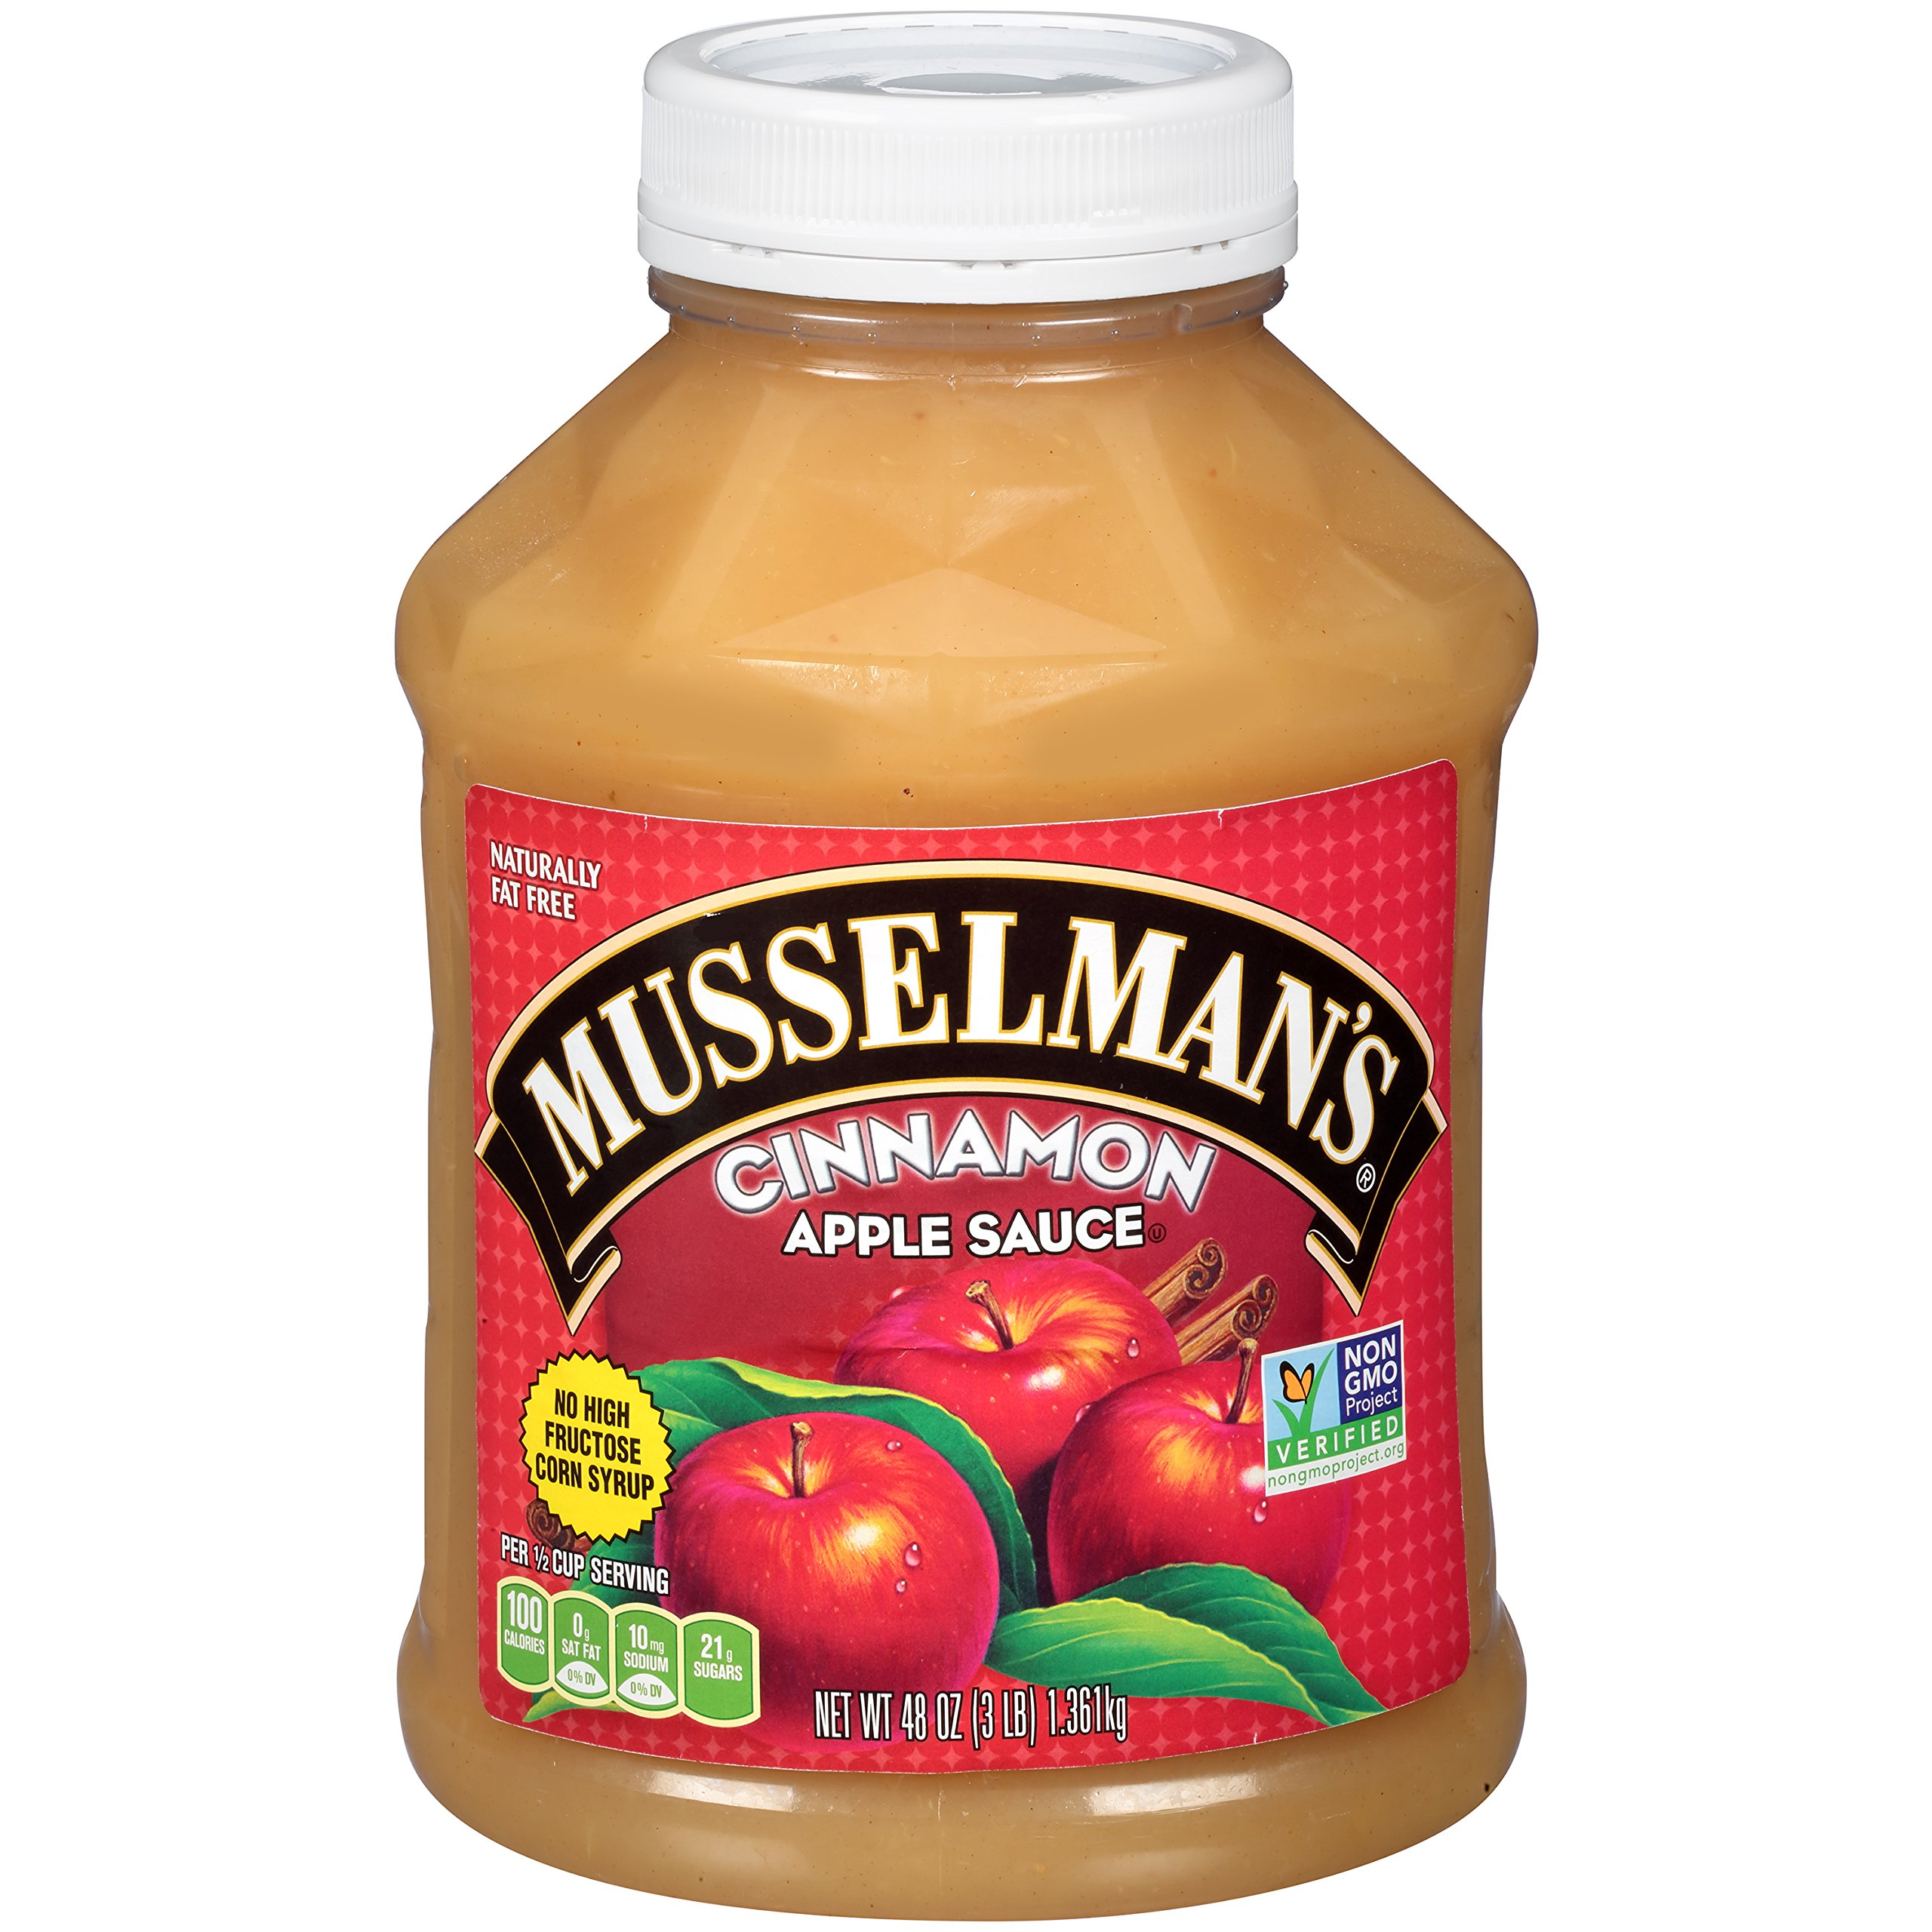 Musselman's Cinnamon Apple Sauce, 48 Ounce (Pack of 8) by Musselmans